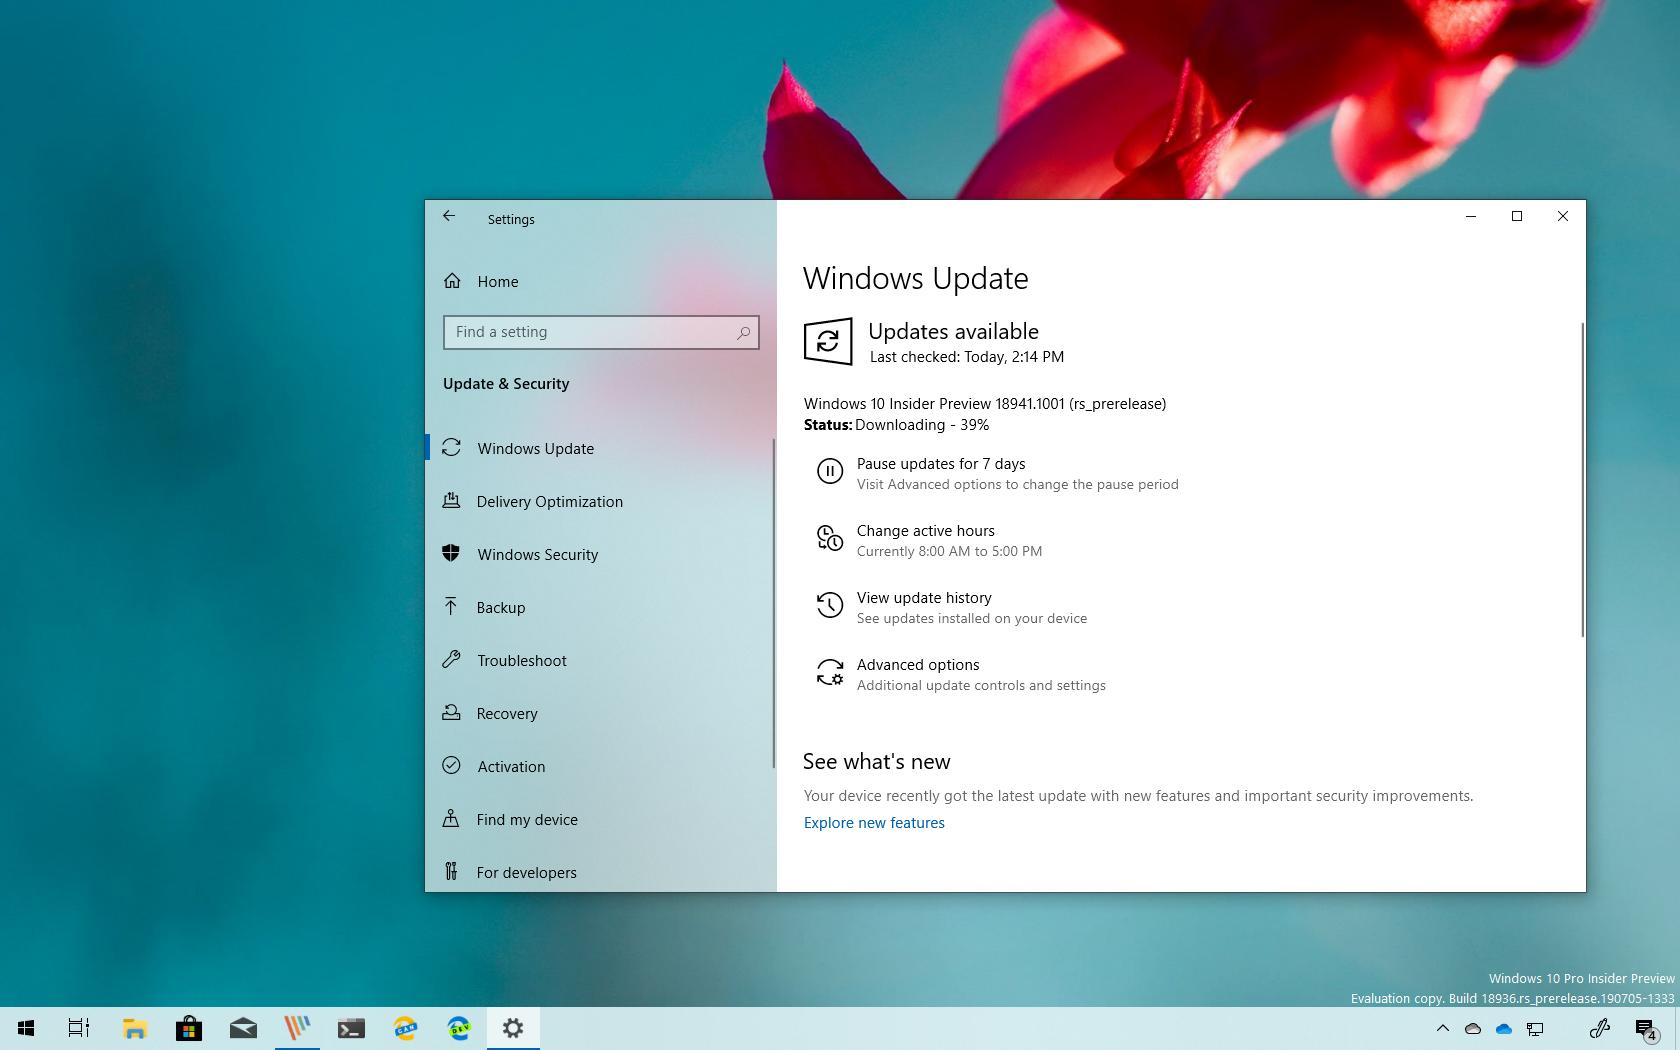 Windows 10 Build 18941 20h1 Releases With New Features